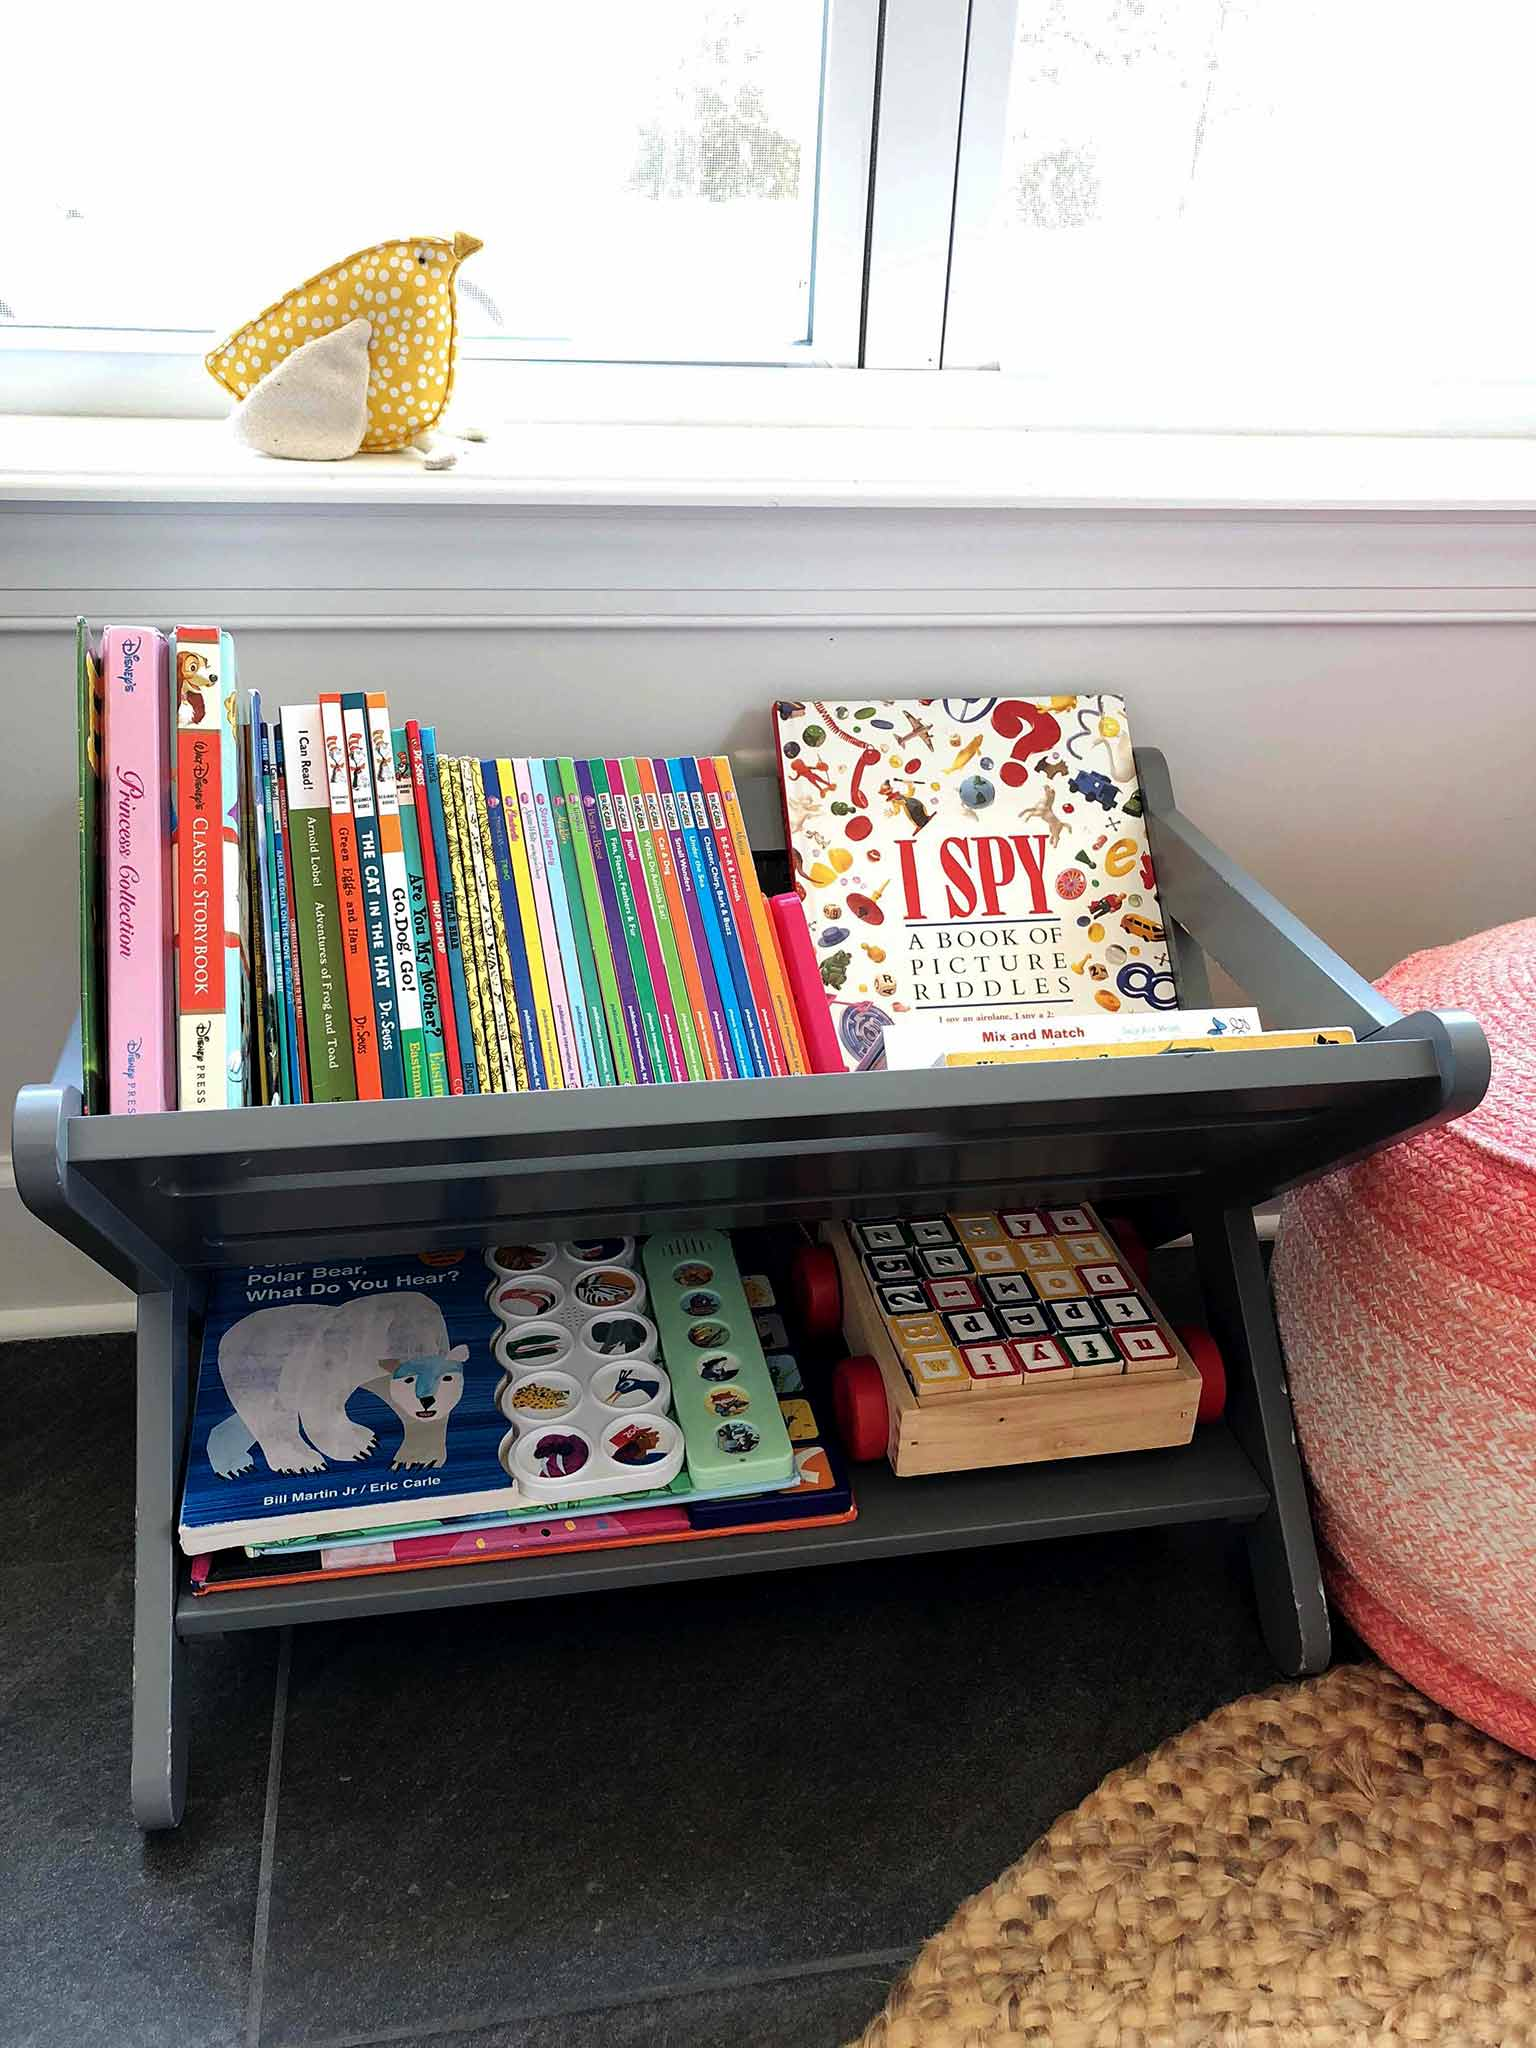 Book caddy - How to Declutter, Organize and Style Kids' Books - That Homebird Life Blog